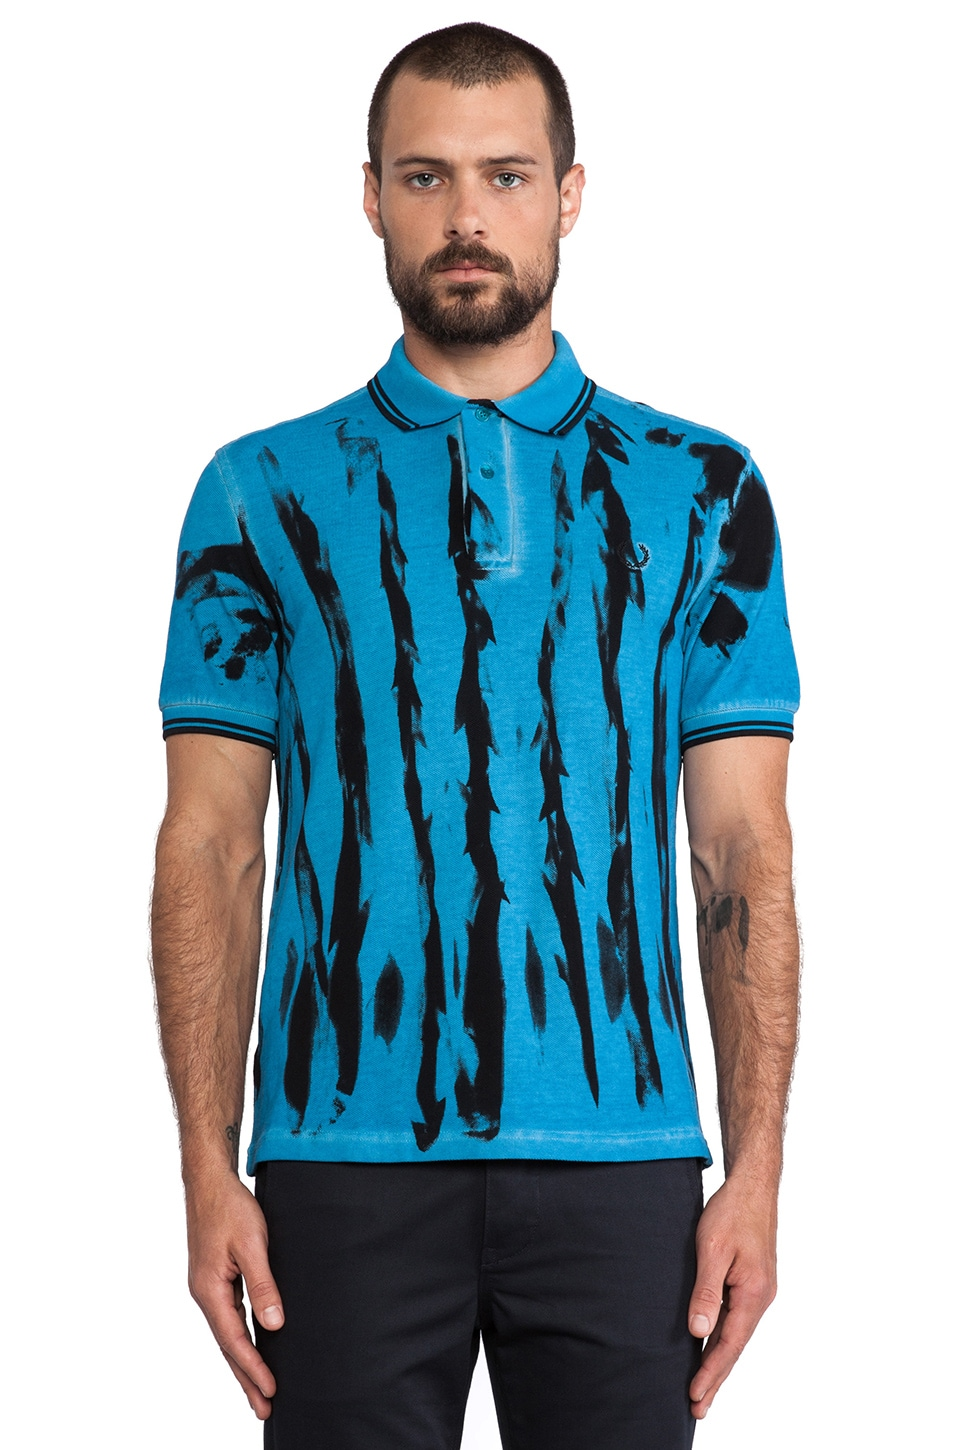 Fred Perry Laurel Wreath Acid Tie Dye Shirt in Acid Blue